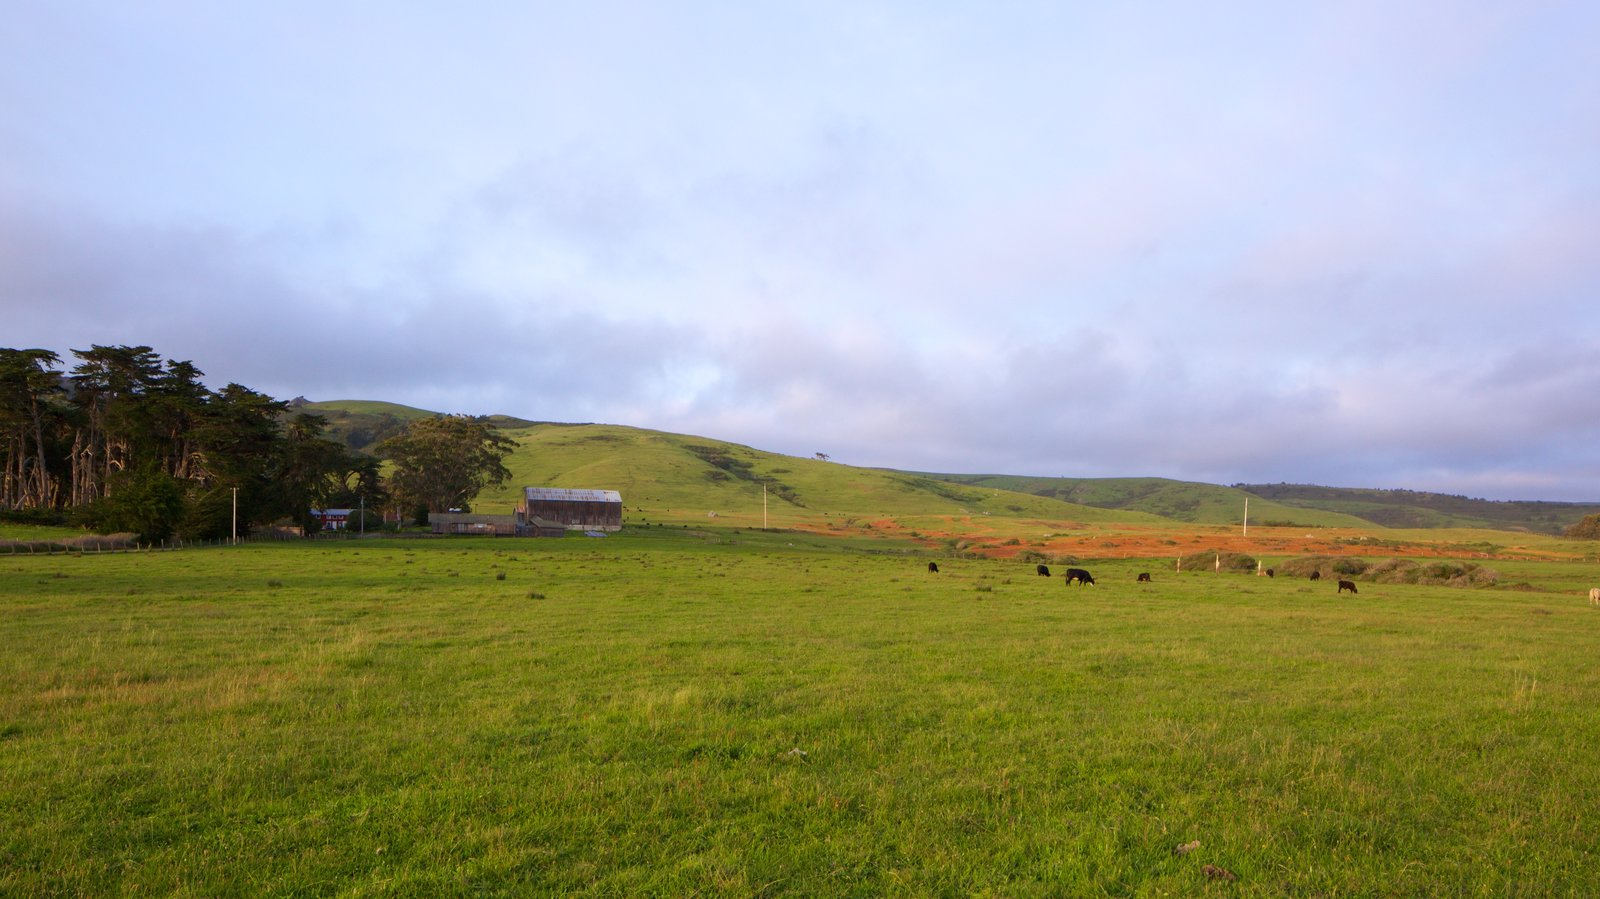 Sonoma Valley featuring tranquil scenes and landscape views